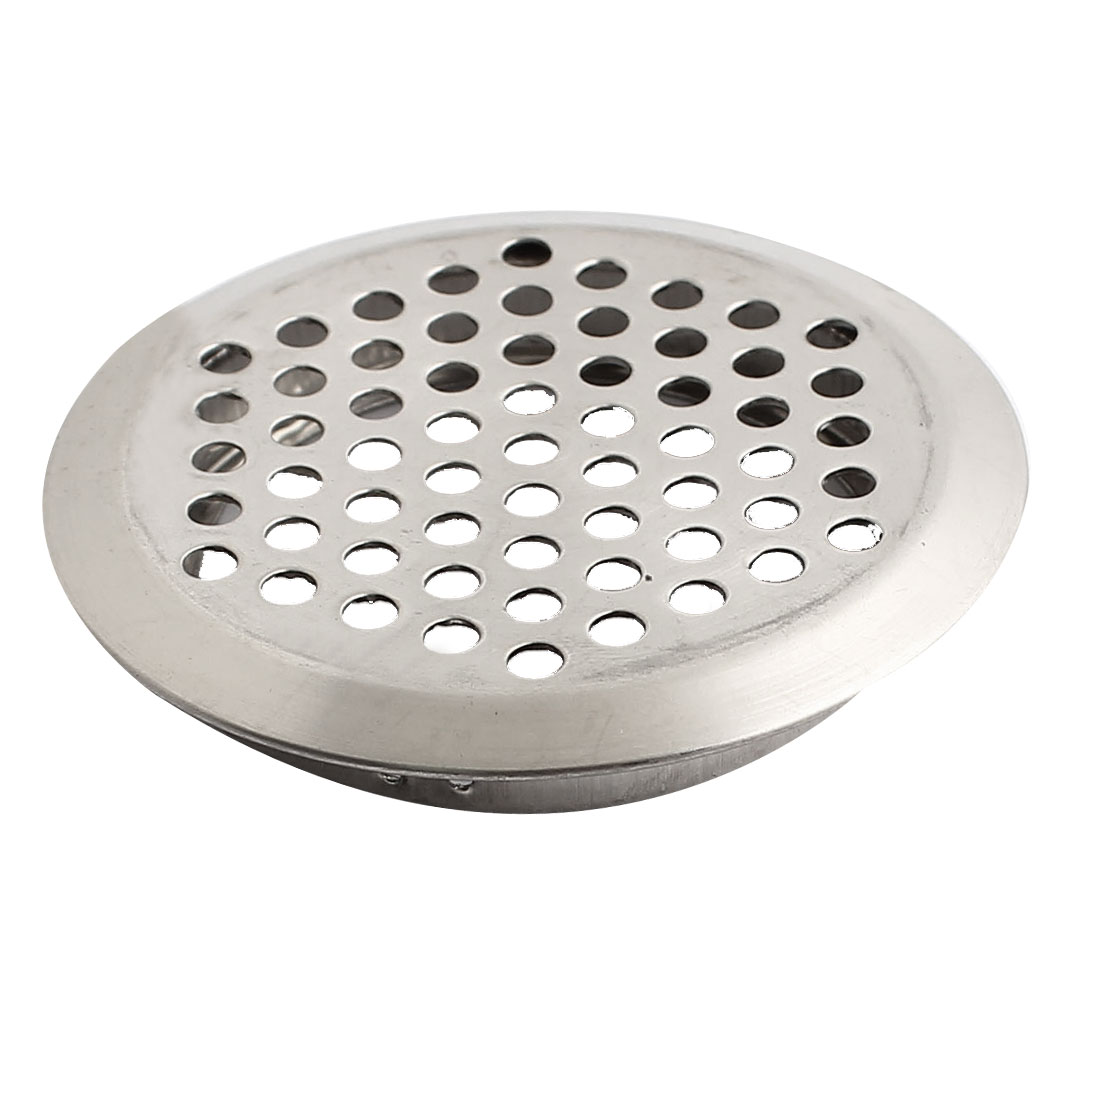 53mm Bottom Dia Metal Round Air Vent Grill Ventilation Cover Silver Tone